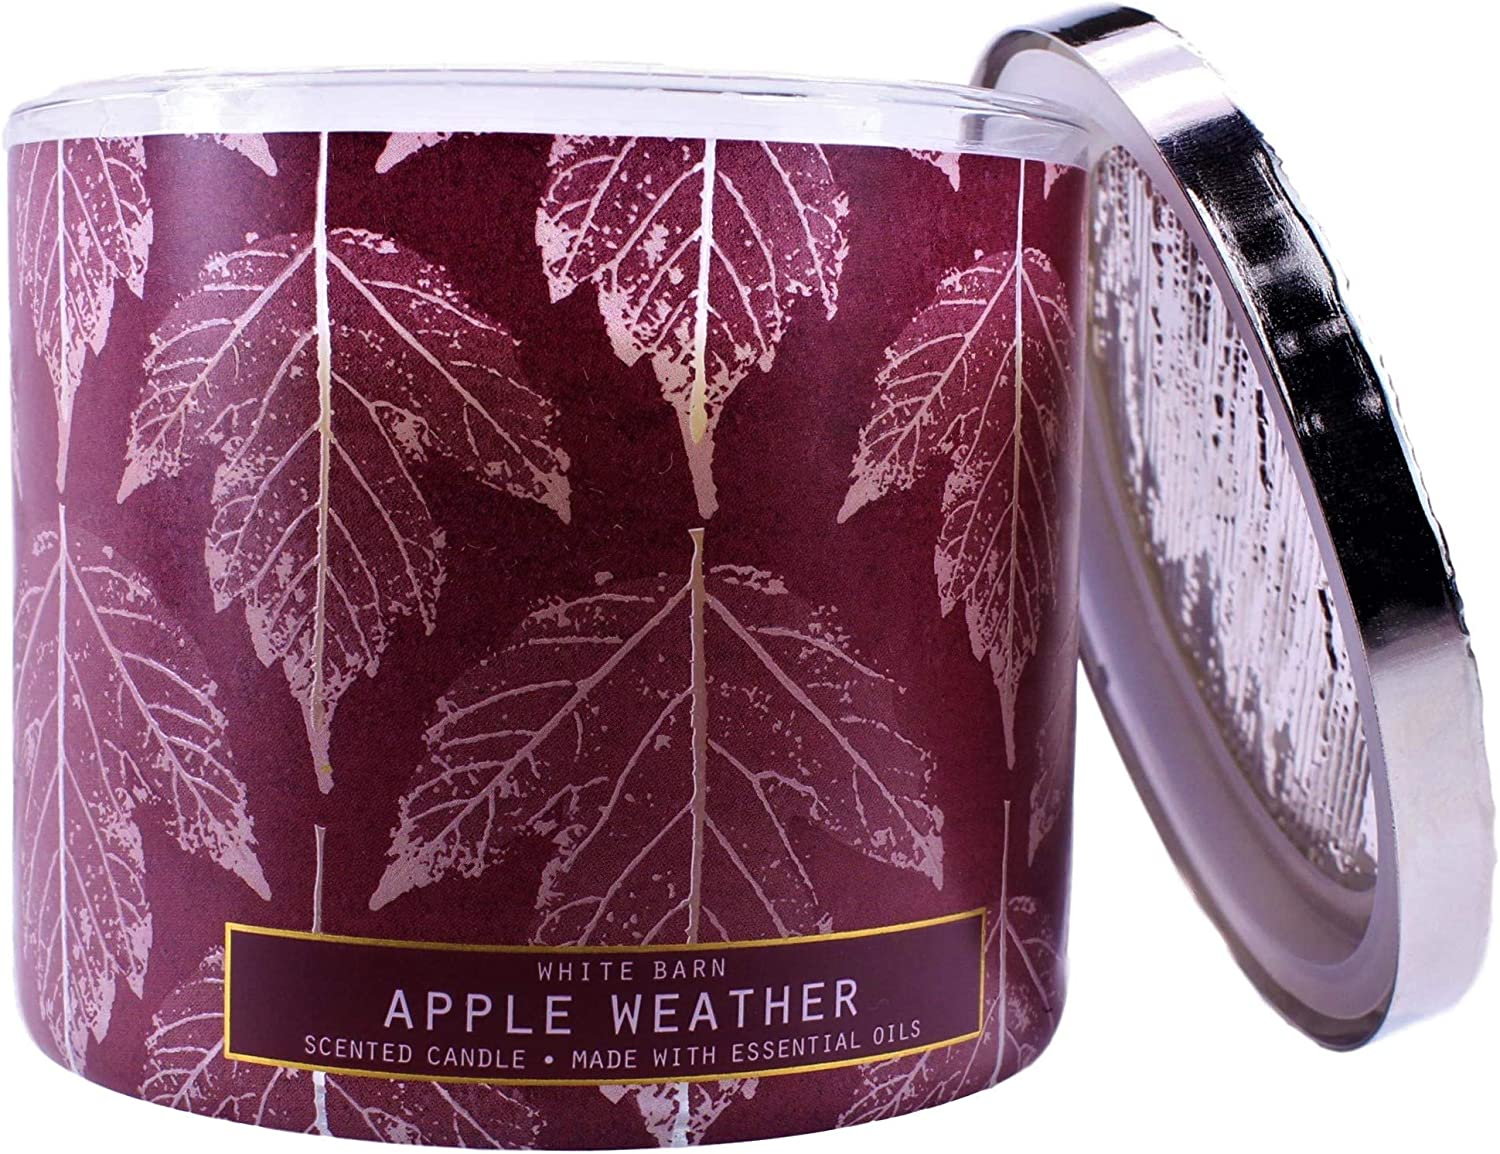 2020 White Barn Bath Apple Weather 3 Wick Candle (Fresh Apples, Lavender Leaves, Cinnamon Bark) W Burn Time of 25-45 Hours